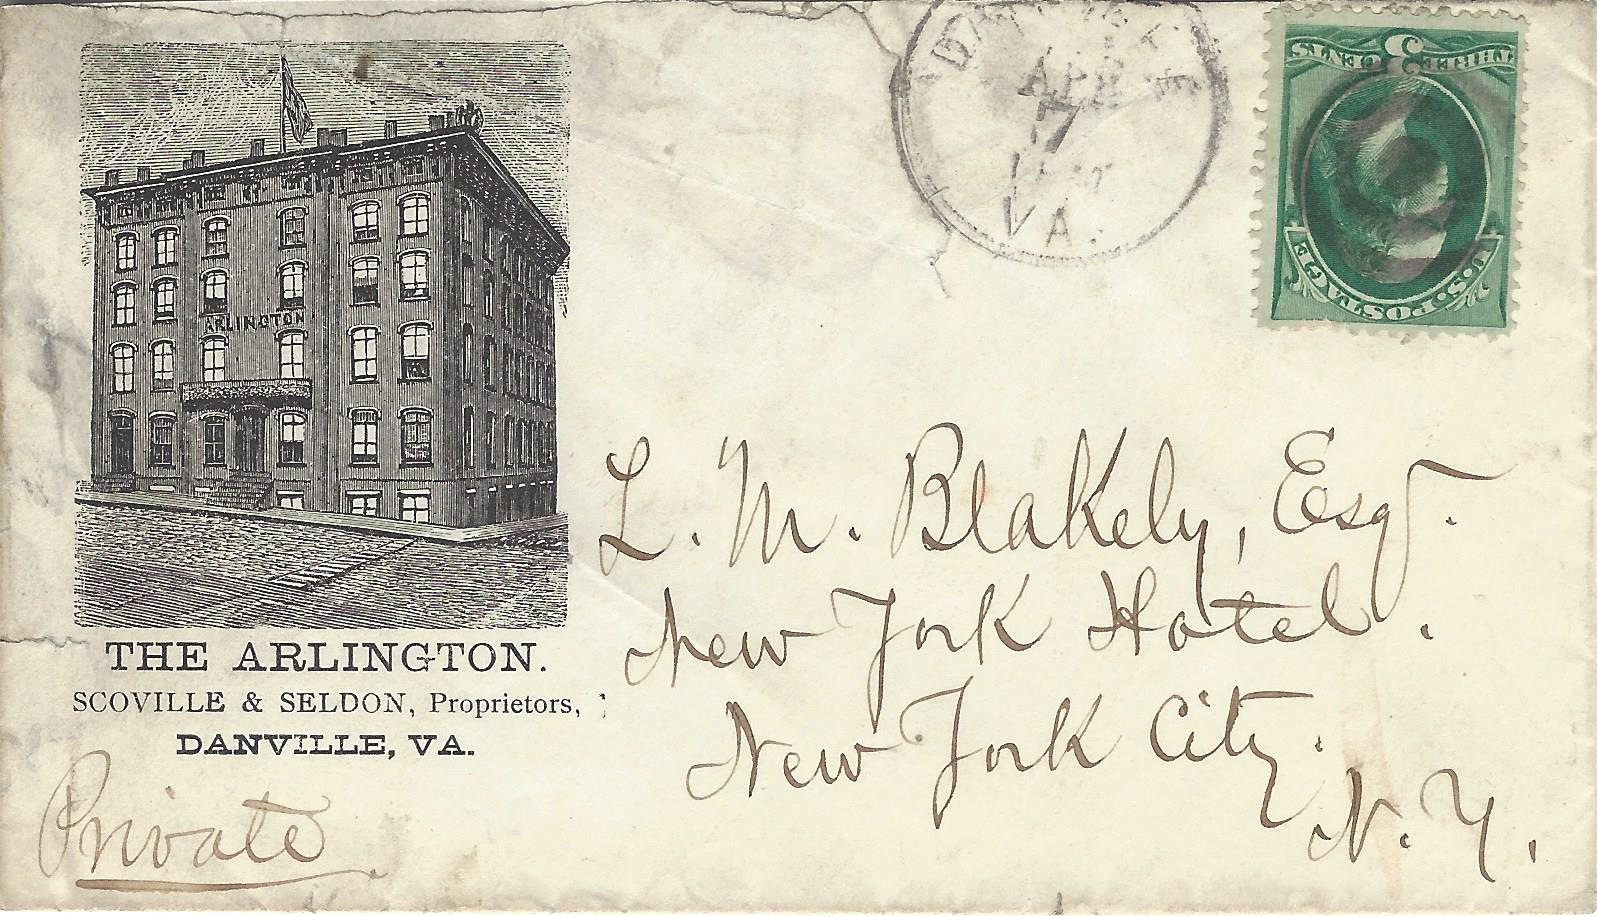 The first (1833) building on corner #2 was the Red Castle Tavern, housing the Farmers' Bank of VA. Shown in an 1870s postal cover, the Arlington Hotel next graced the corner. All the hotels on this corner had to deal with a severe slope of the land.